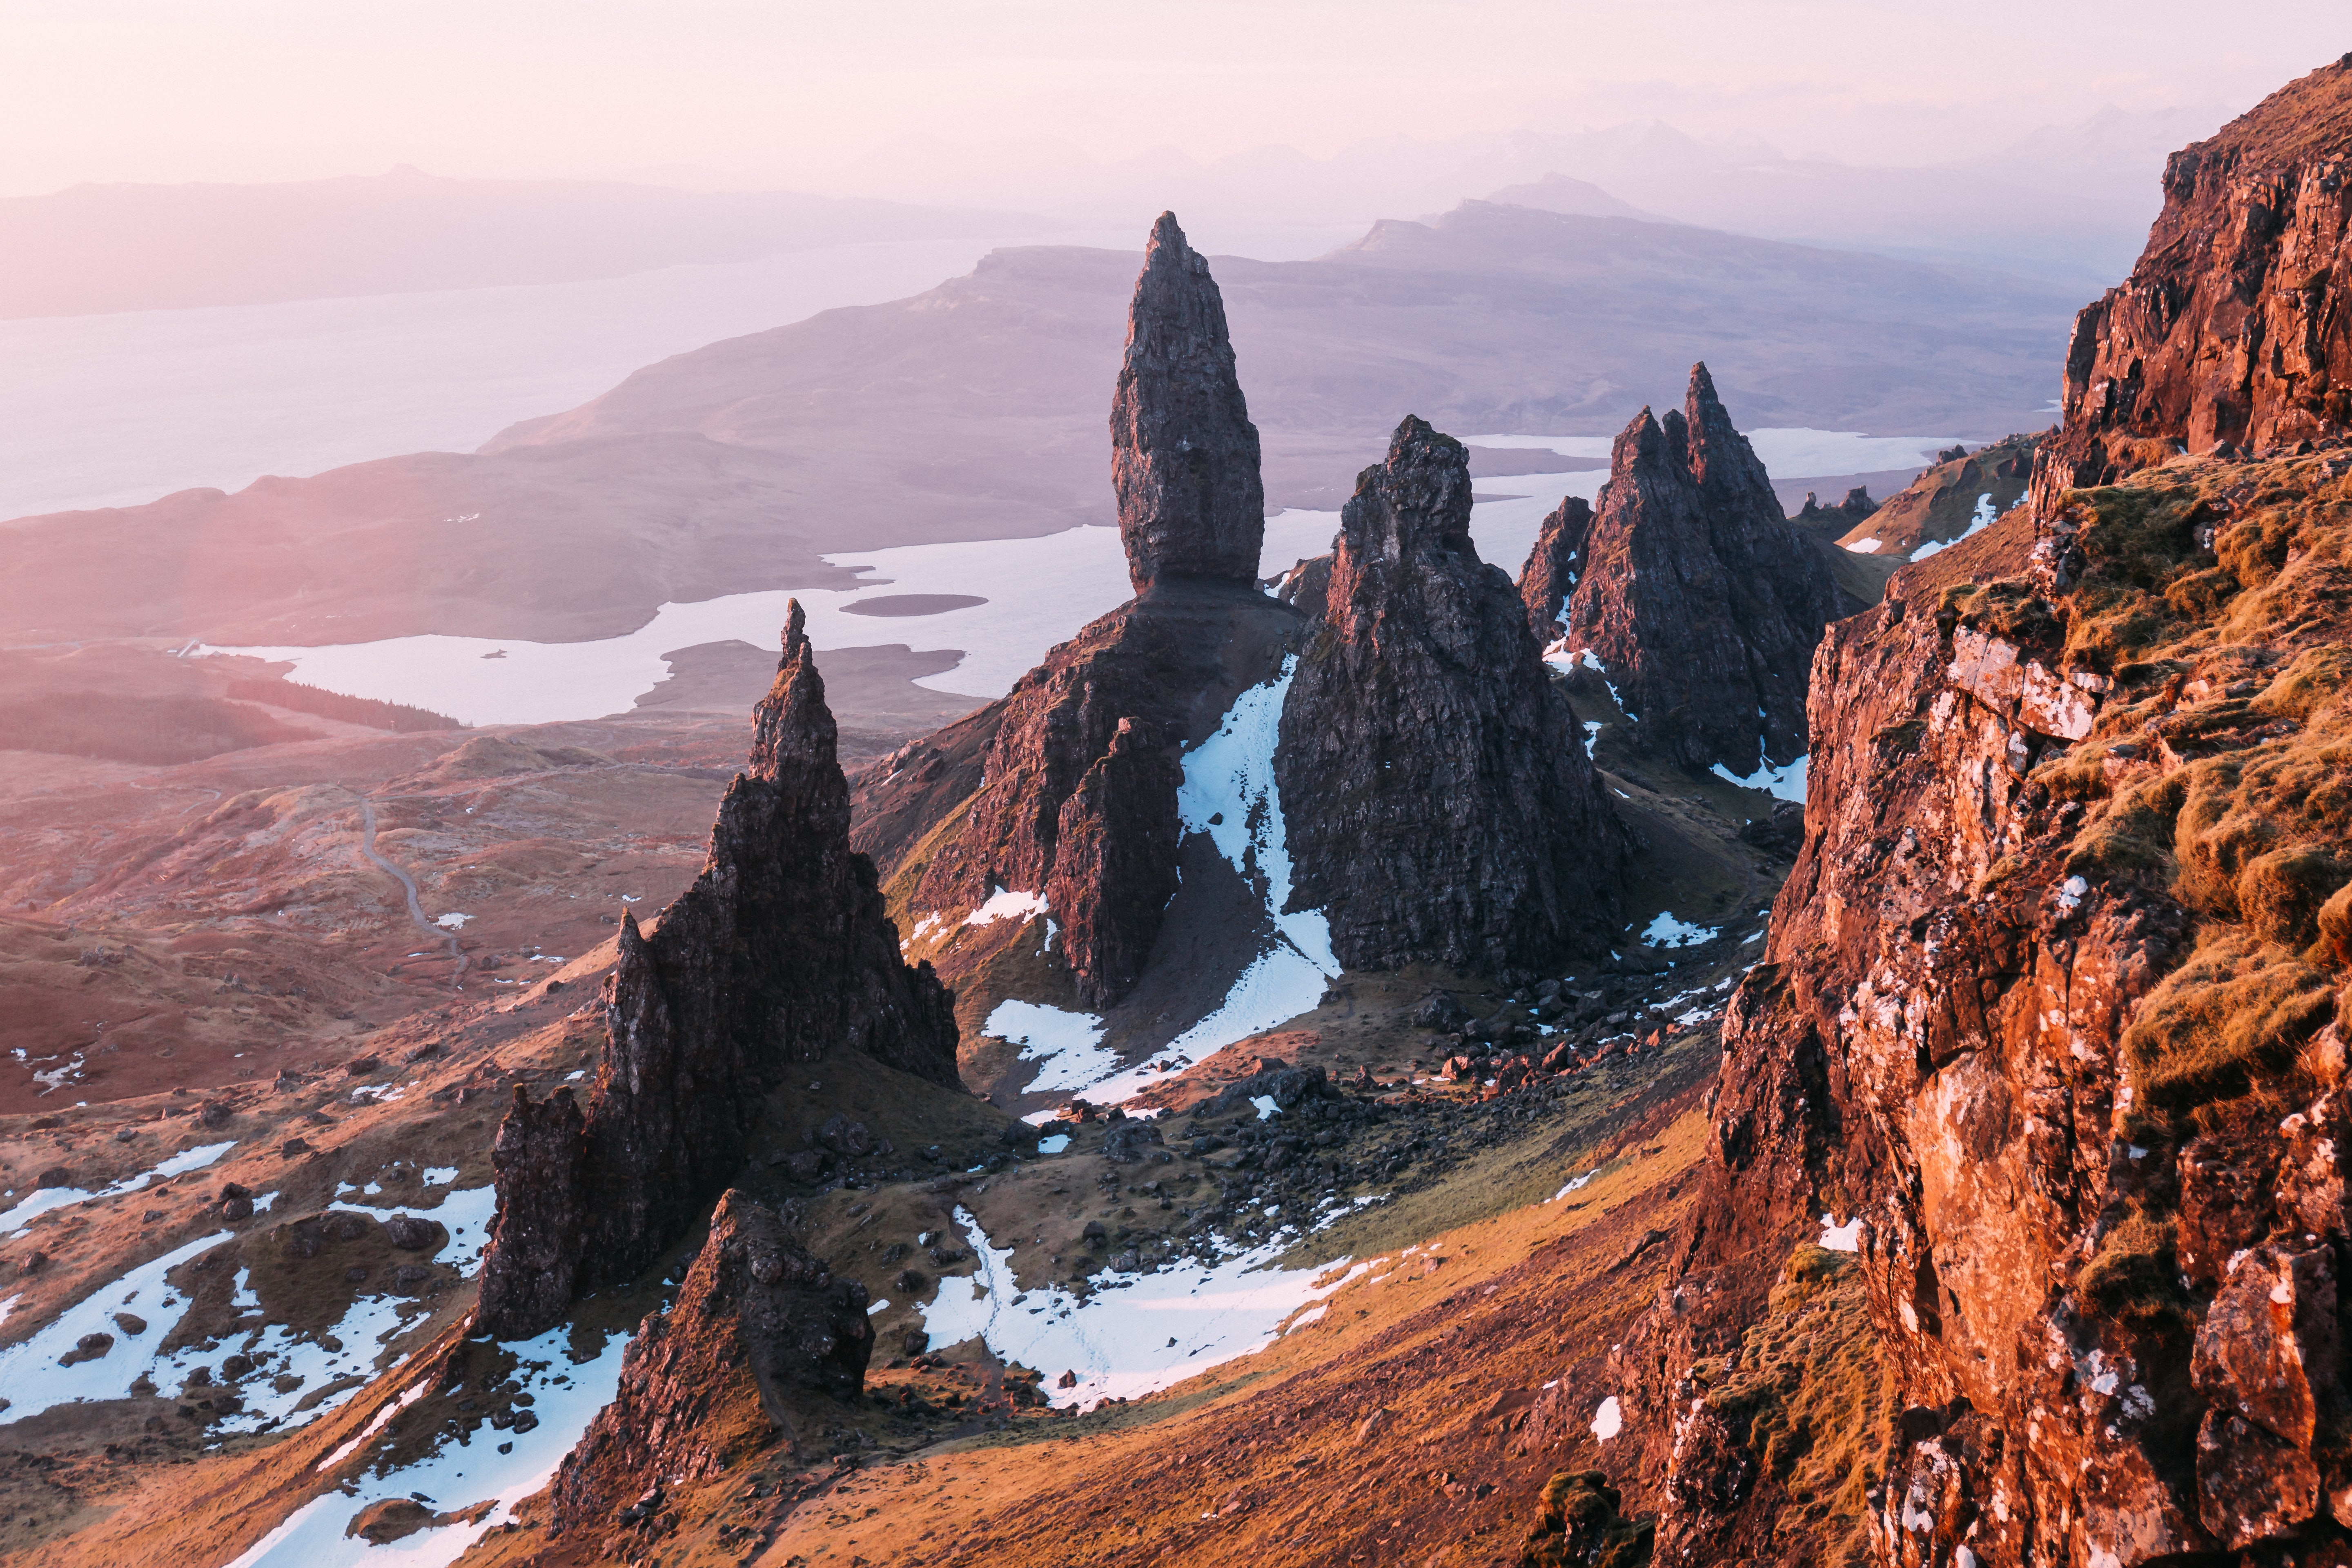 The Old Man of Storr, Isle of Skye by Connor Mollison on Unsplash